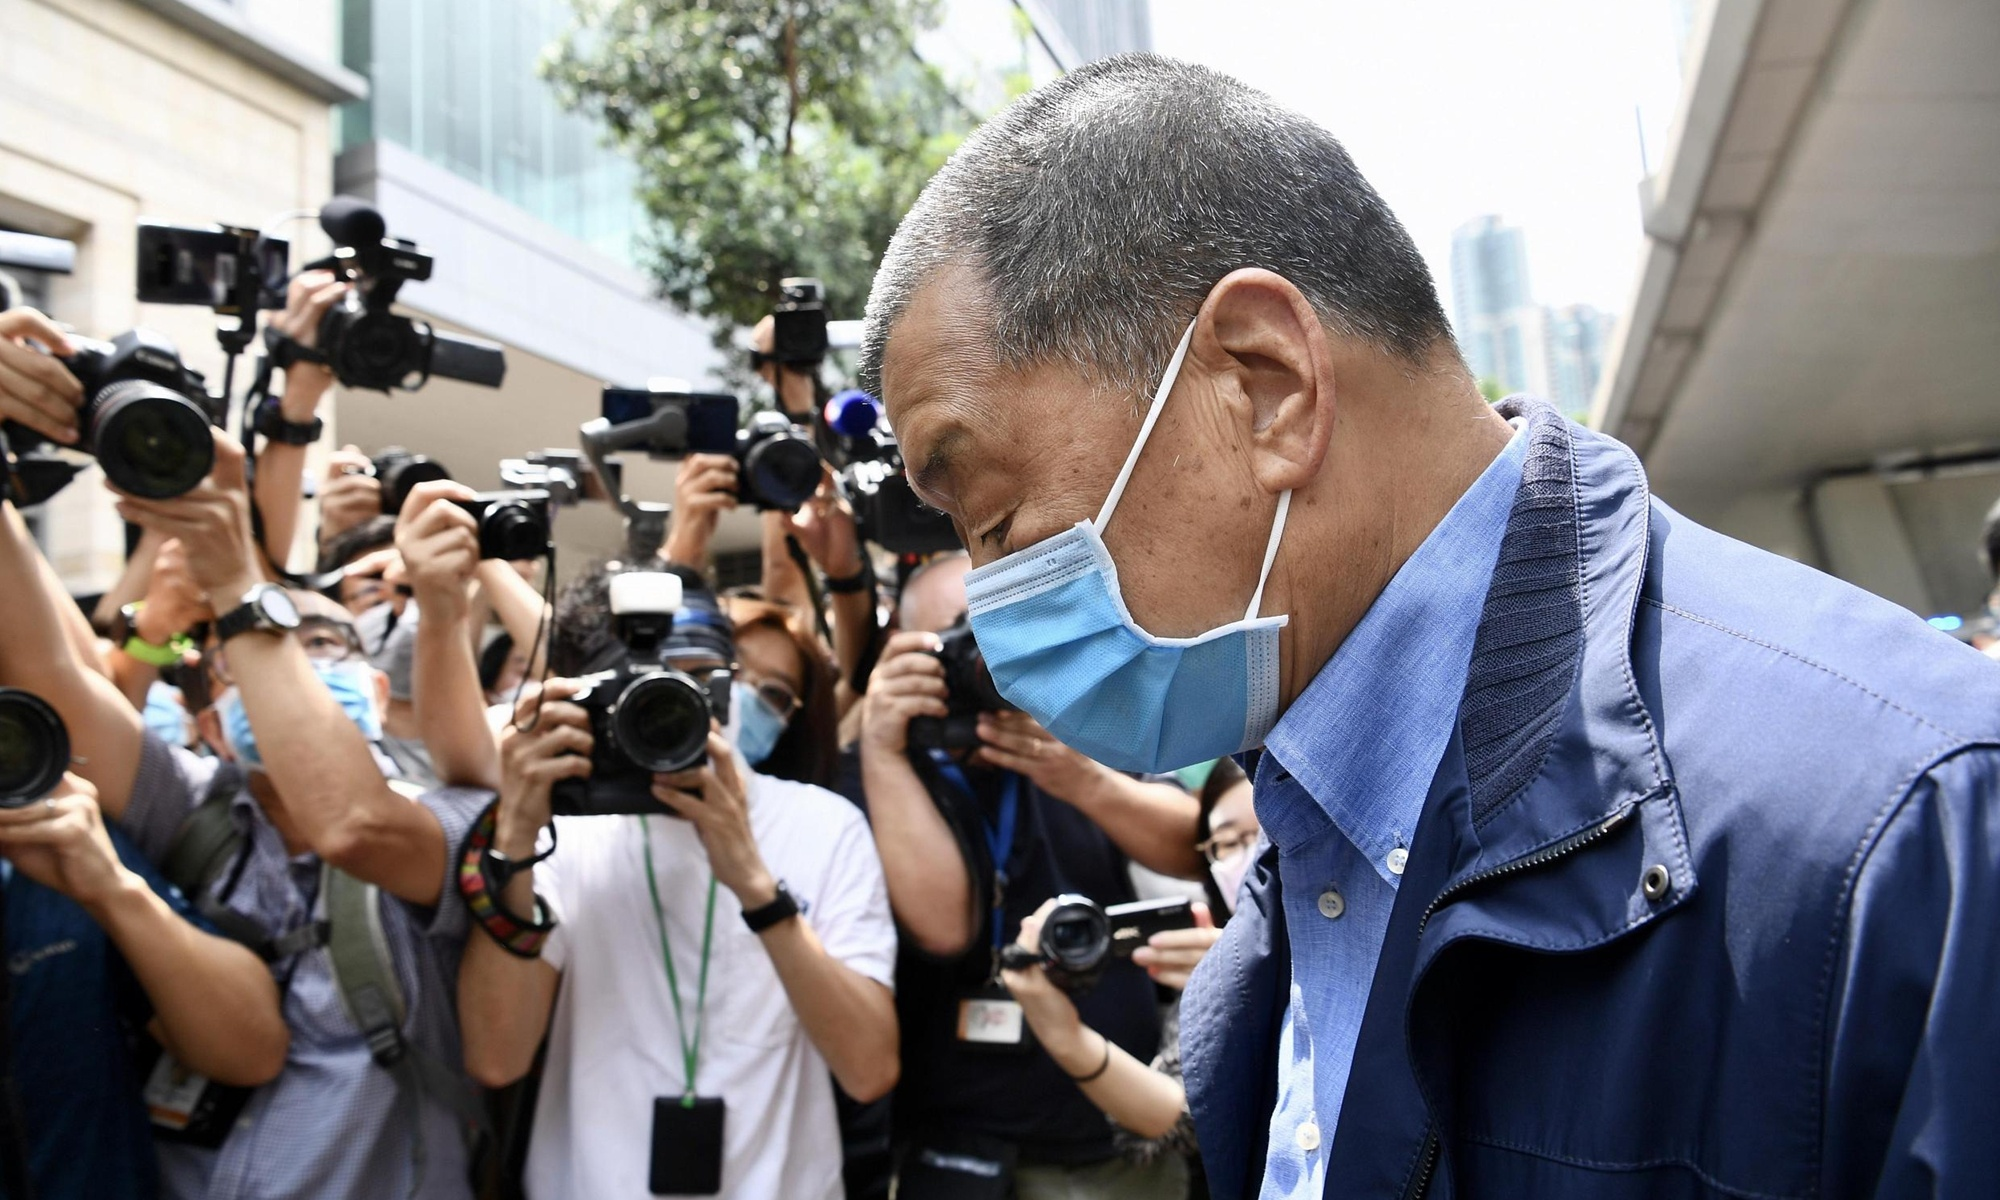 Jimmy Lai bailed out, 'not released': sources